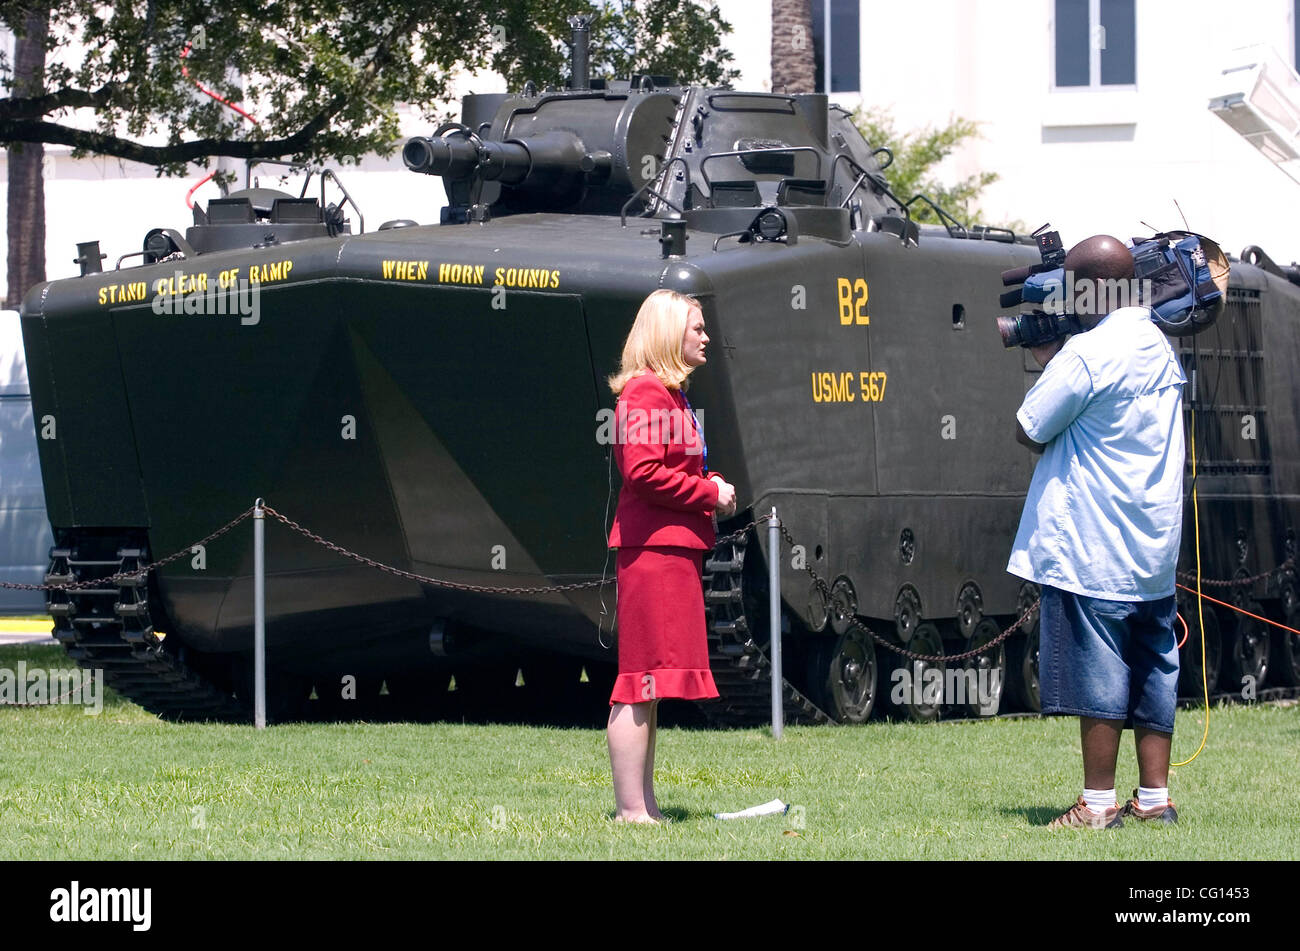 CHARLESTON, SC - JULY 23: A television reporter does a stand-up near a Marine amphibious assault vehicle near the Stock Photo